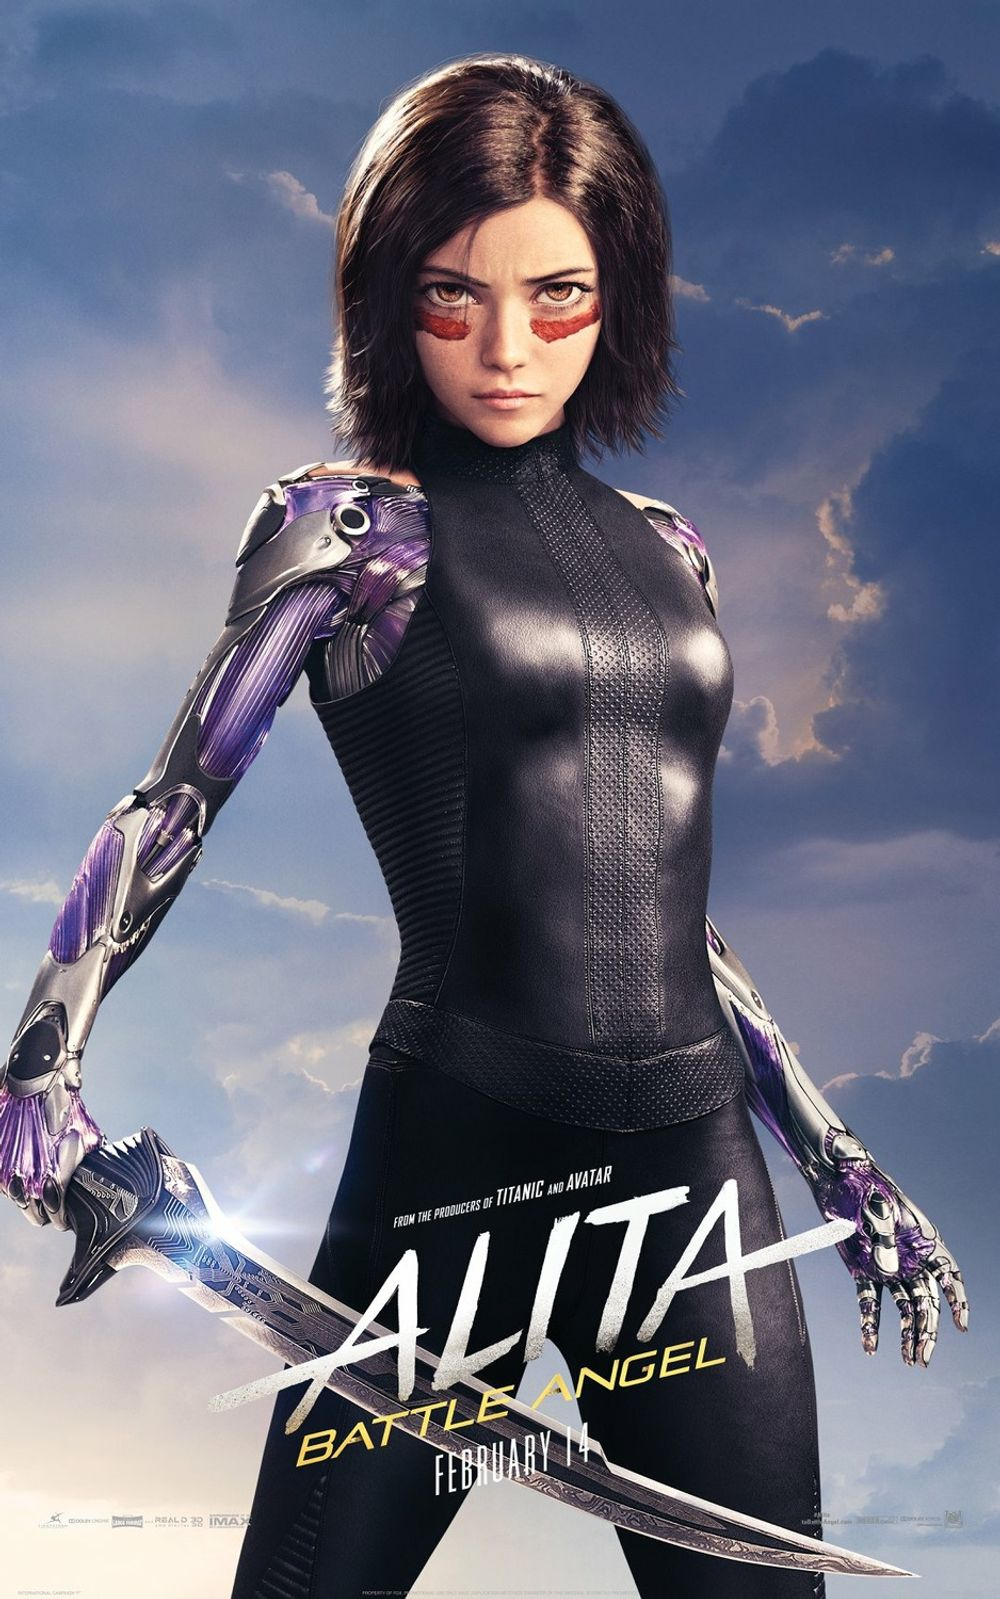 0-Alita: Battle Angel